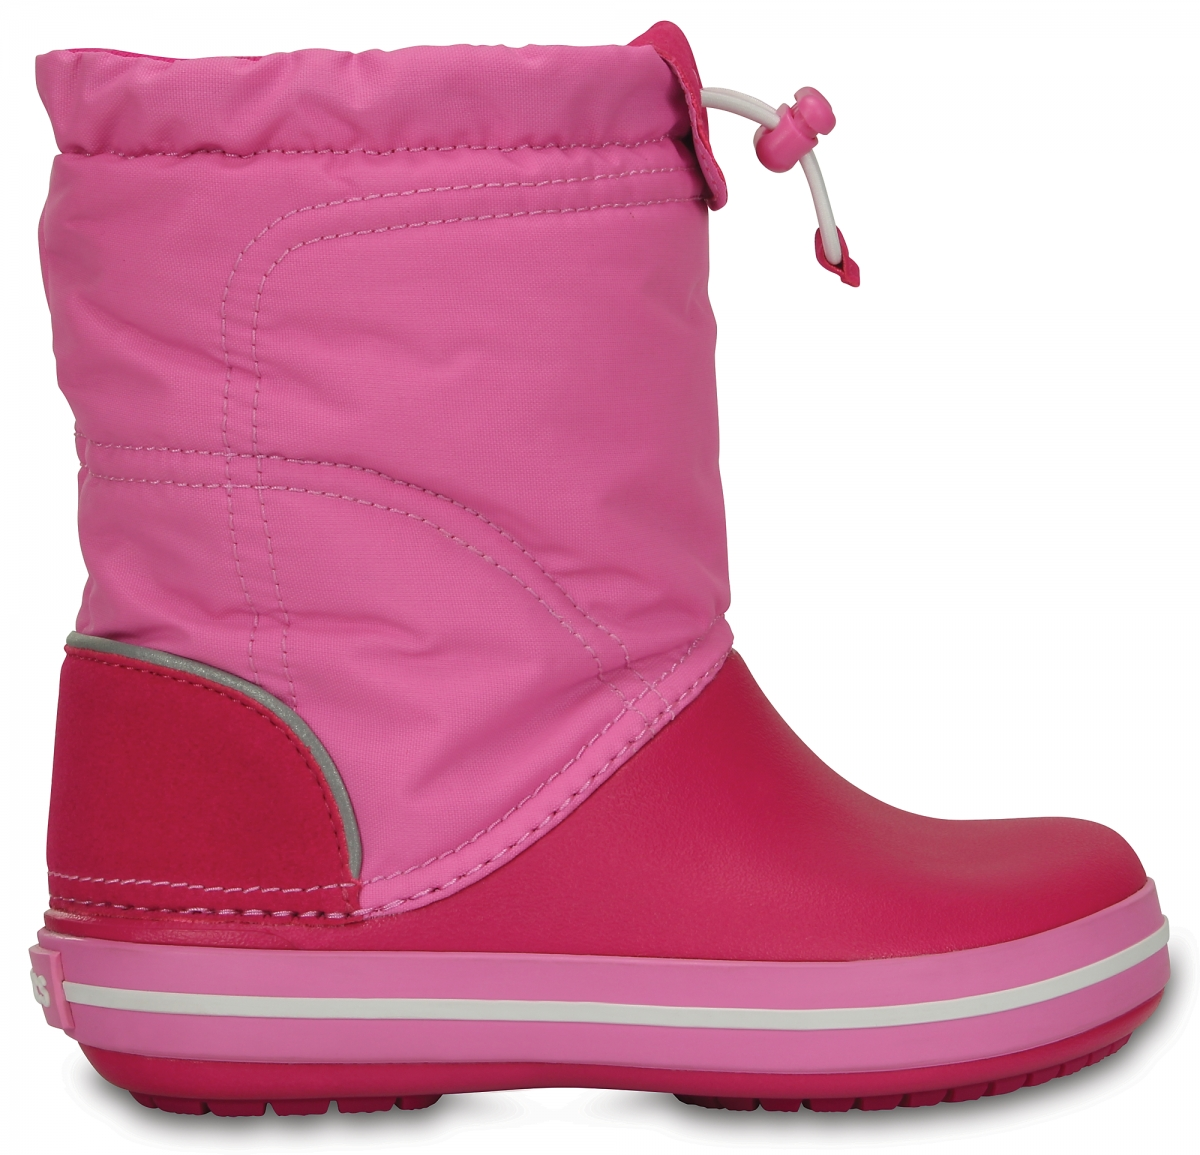 Crocs Crocband LodgePoint Boot Kids Candy Pink/Party Pink, C12 (29-30)